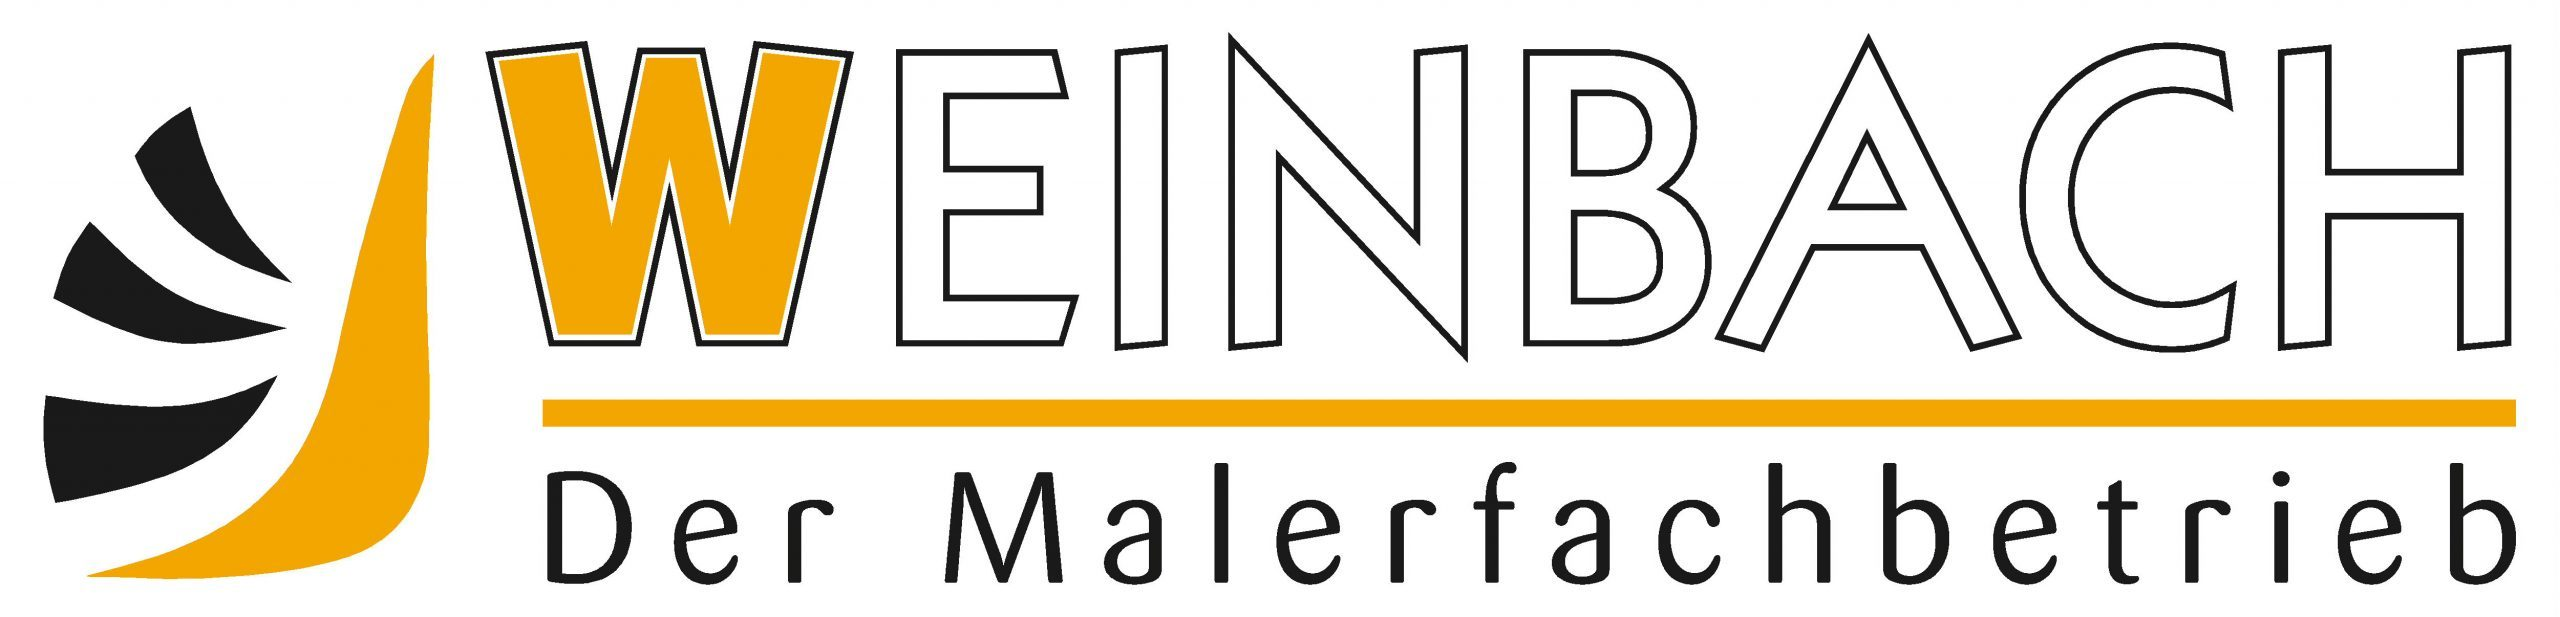 cropped-Weinbach-Logo-scaled-1.jpg